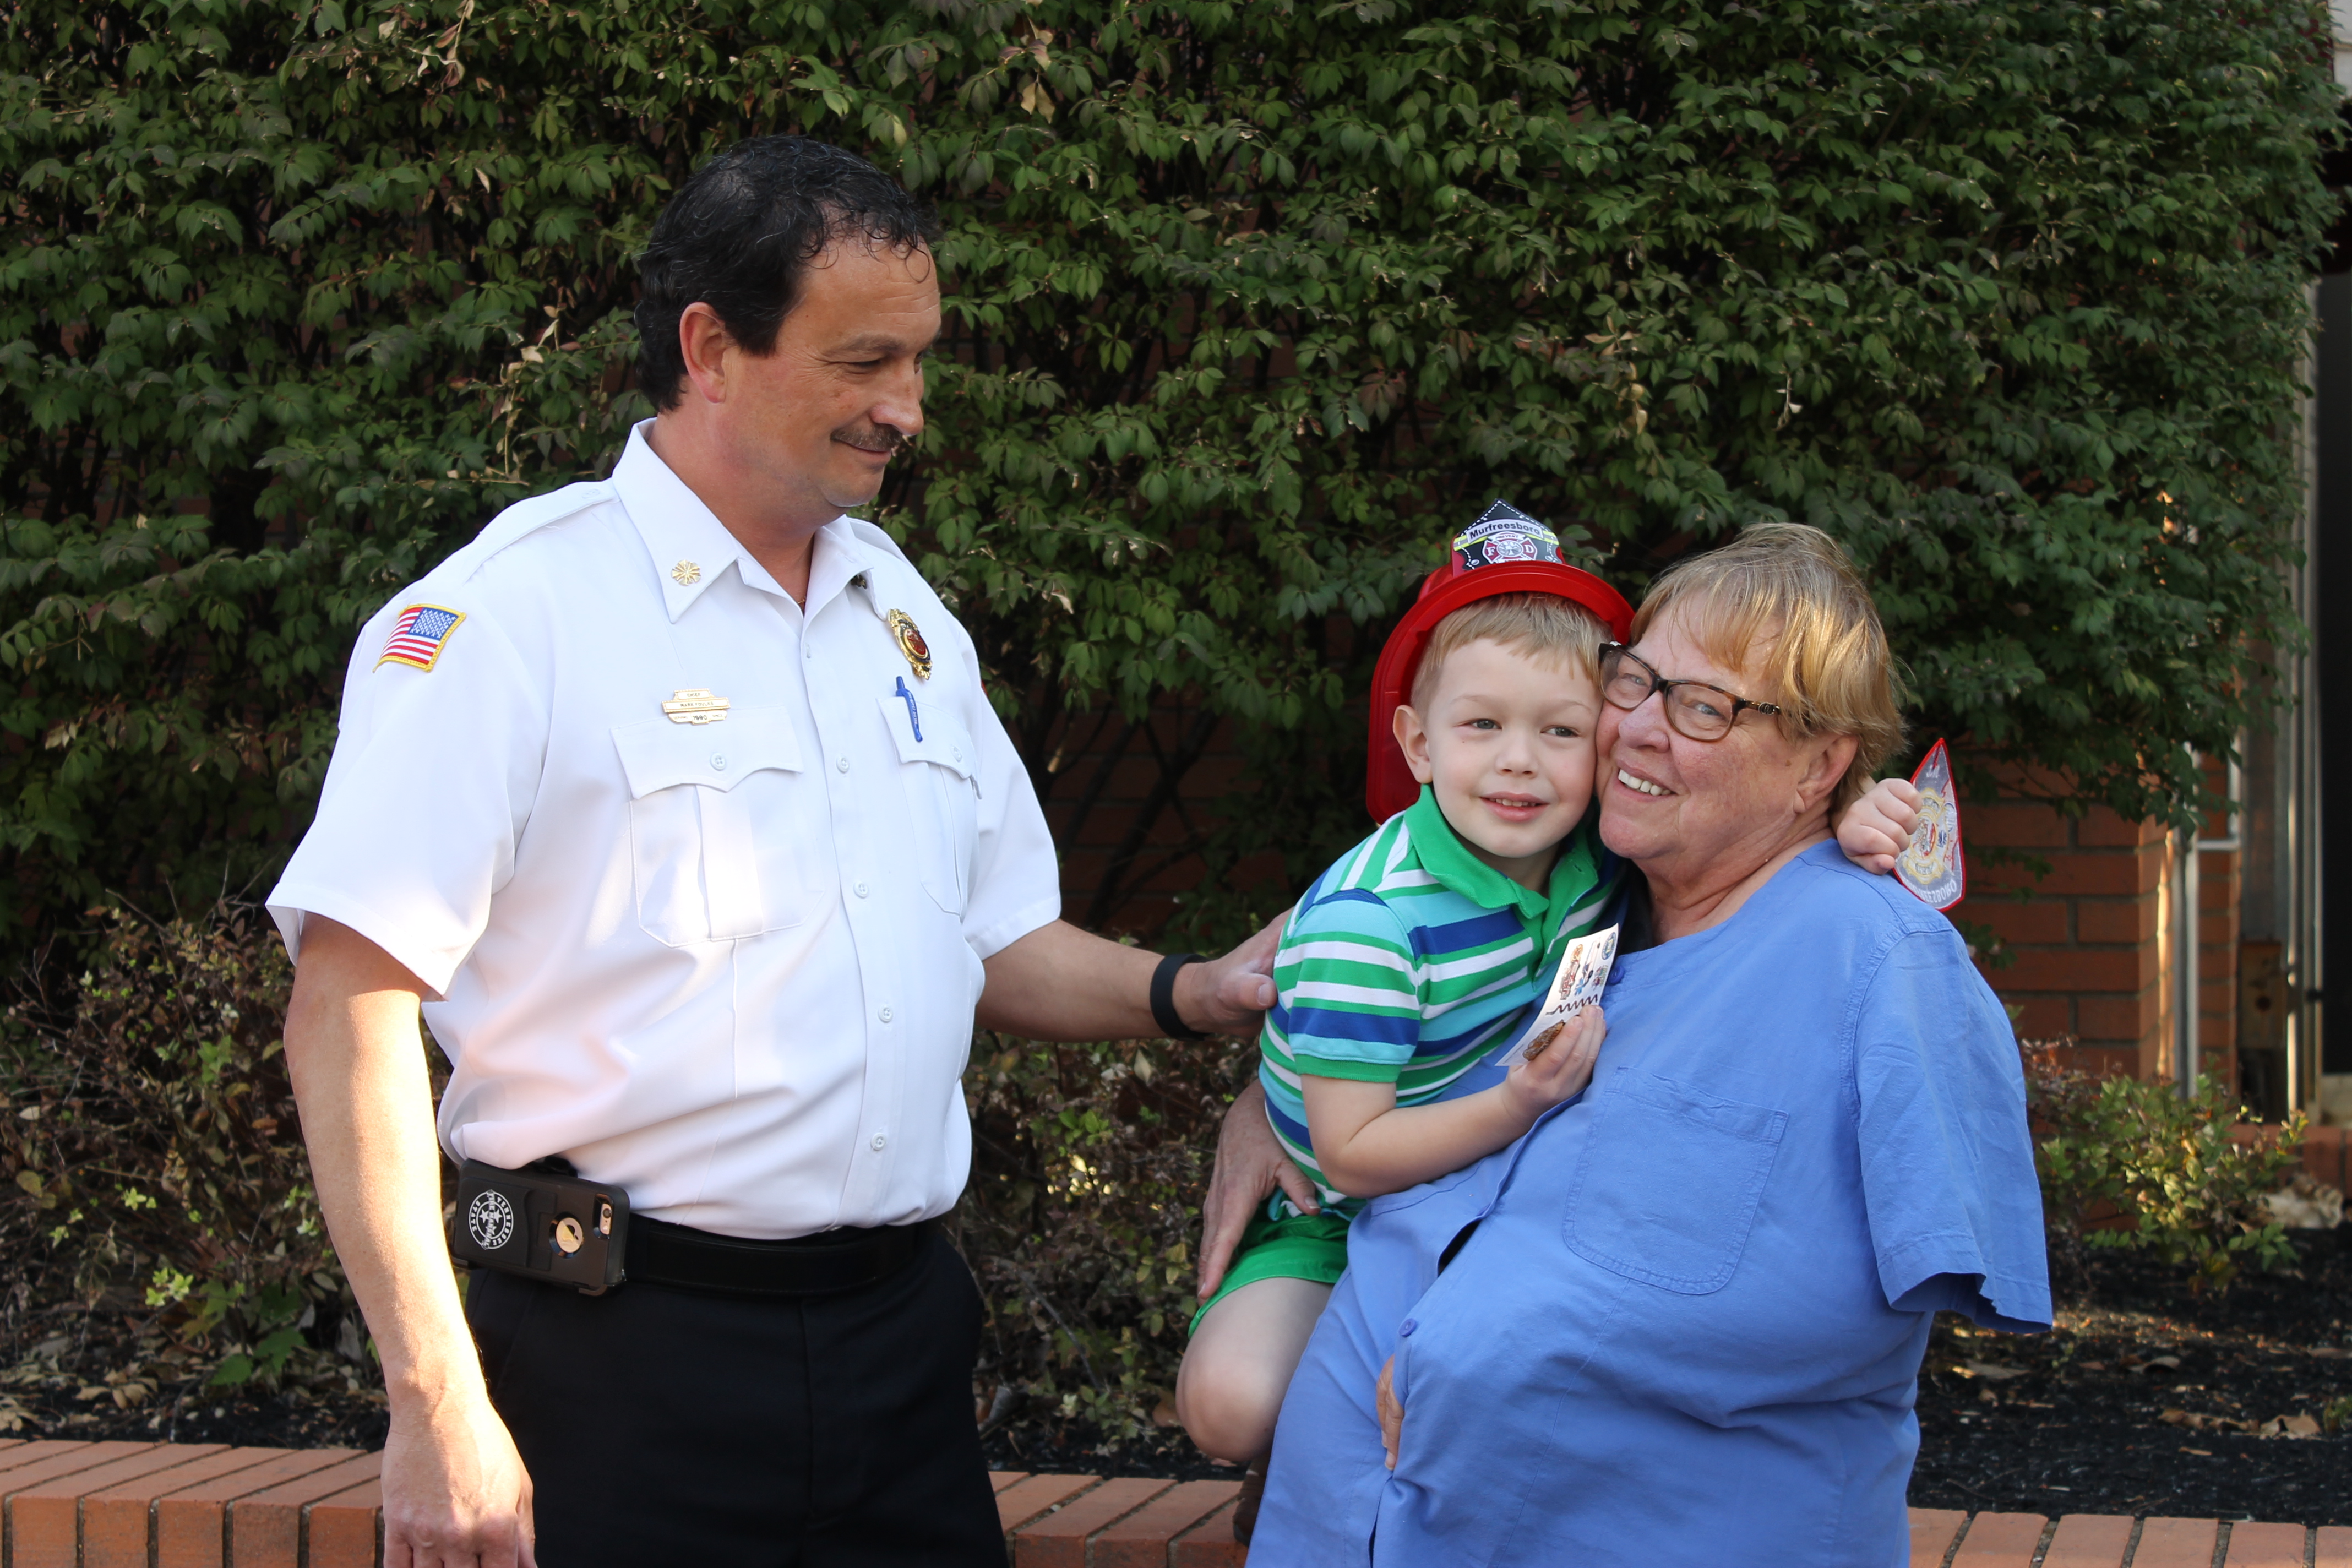 Young boy recognized by the Murfreesboro Fire and Rescue Department